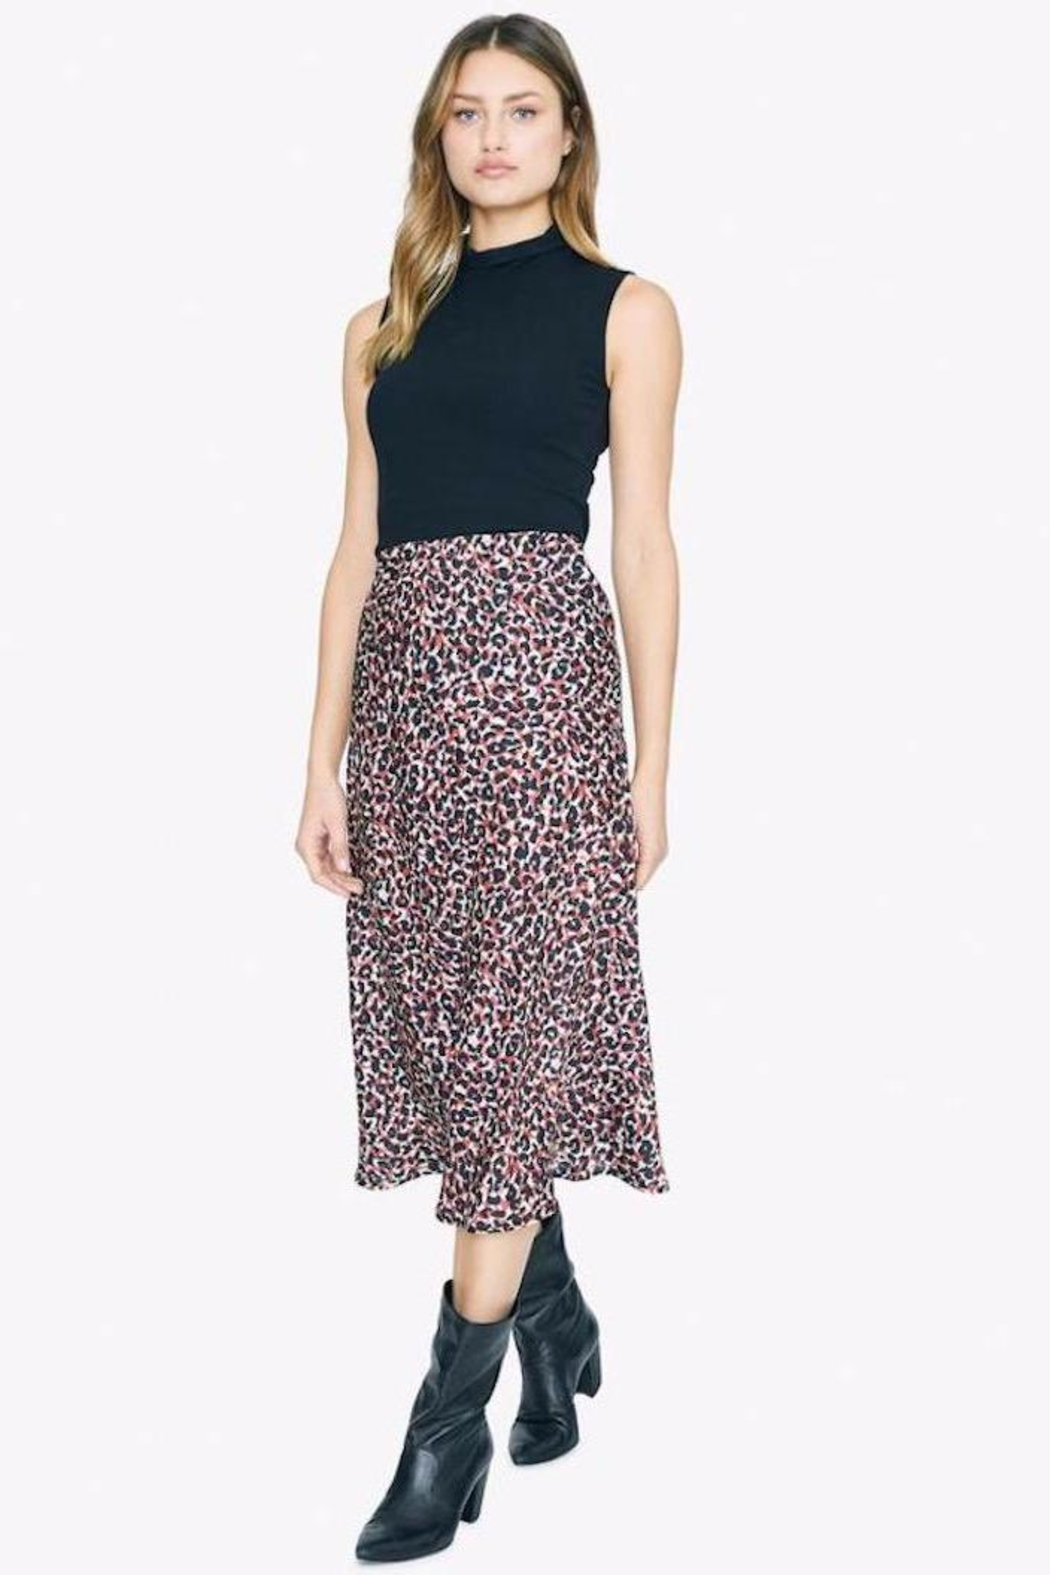 Sanctuary Cheetah Print Skirt - Main Image